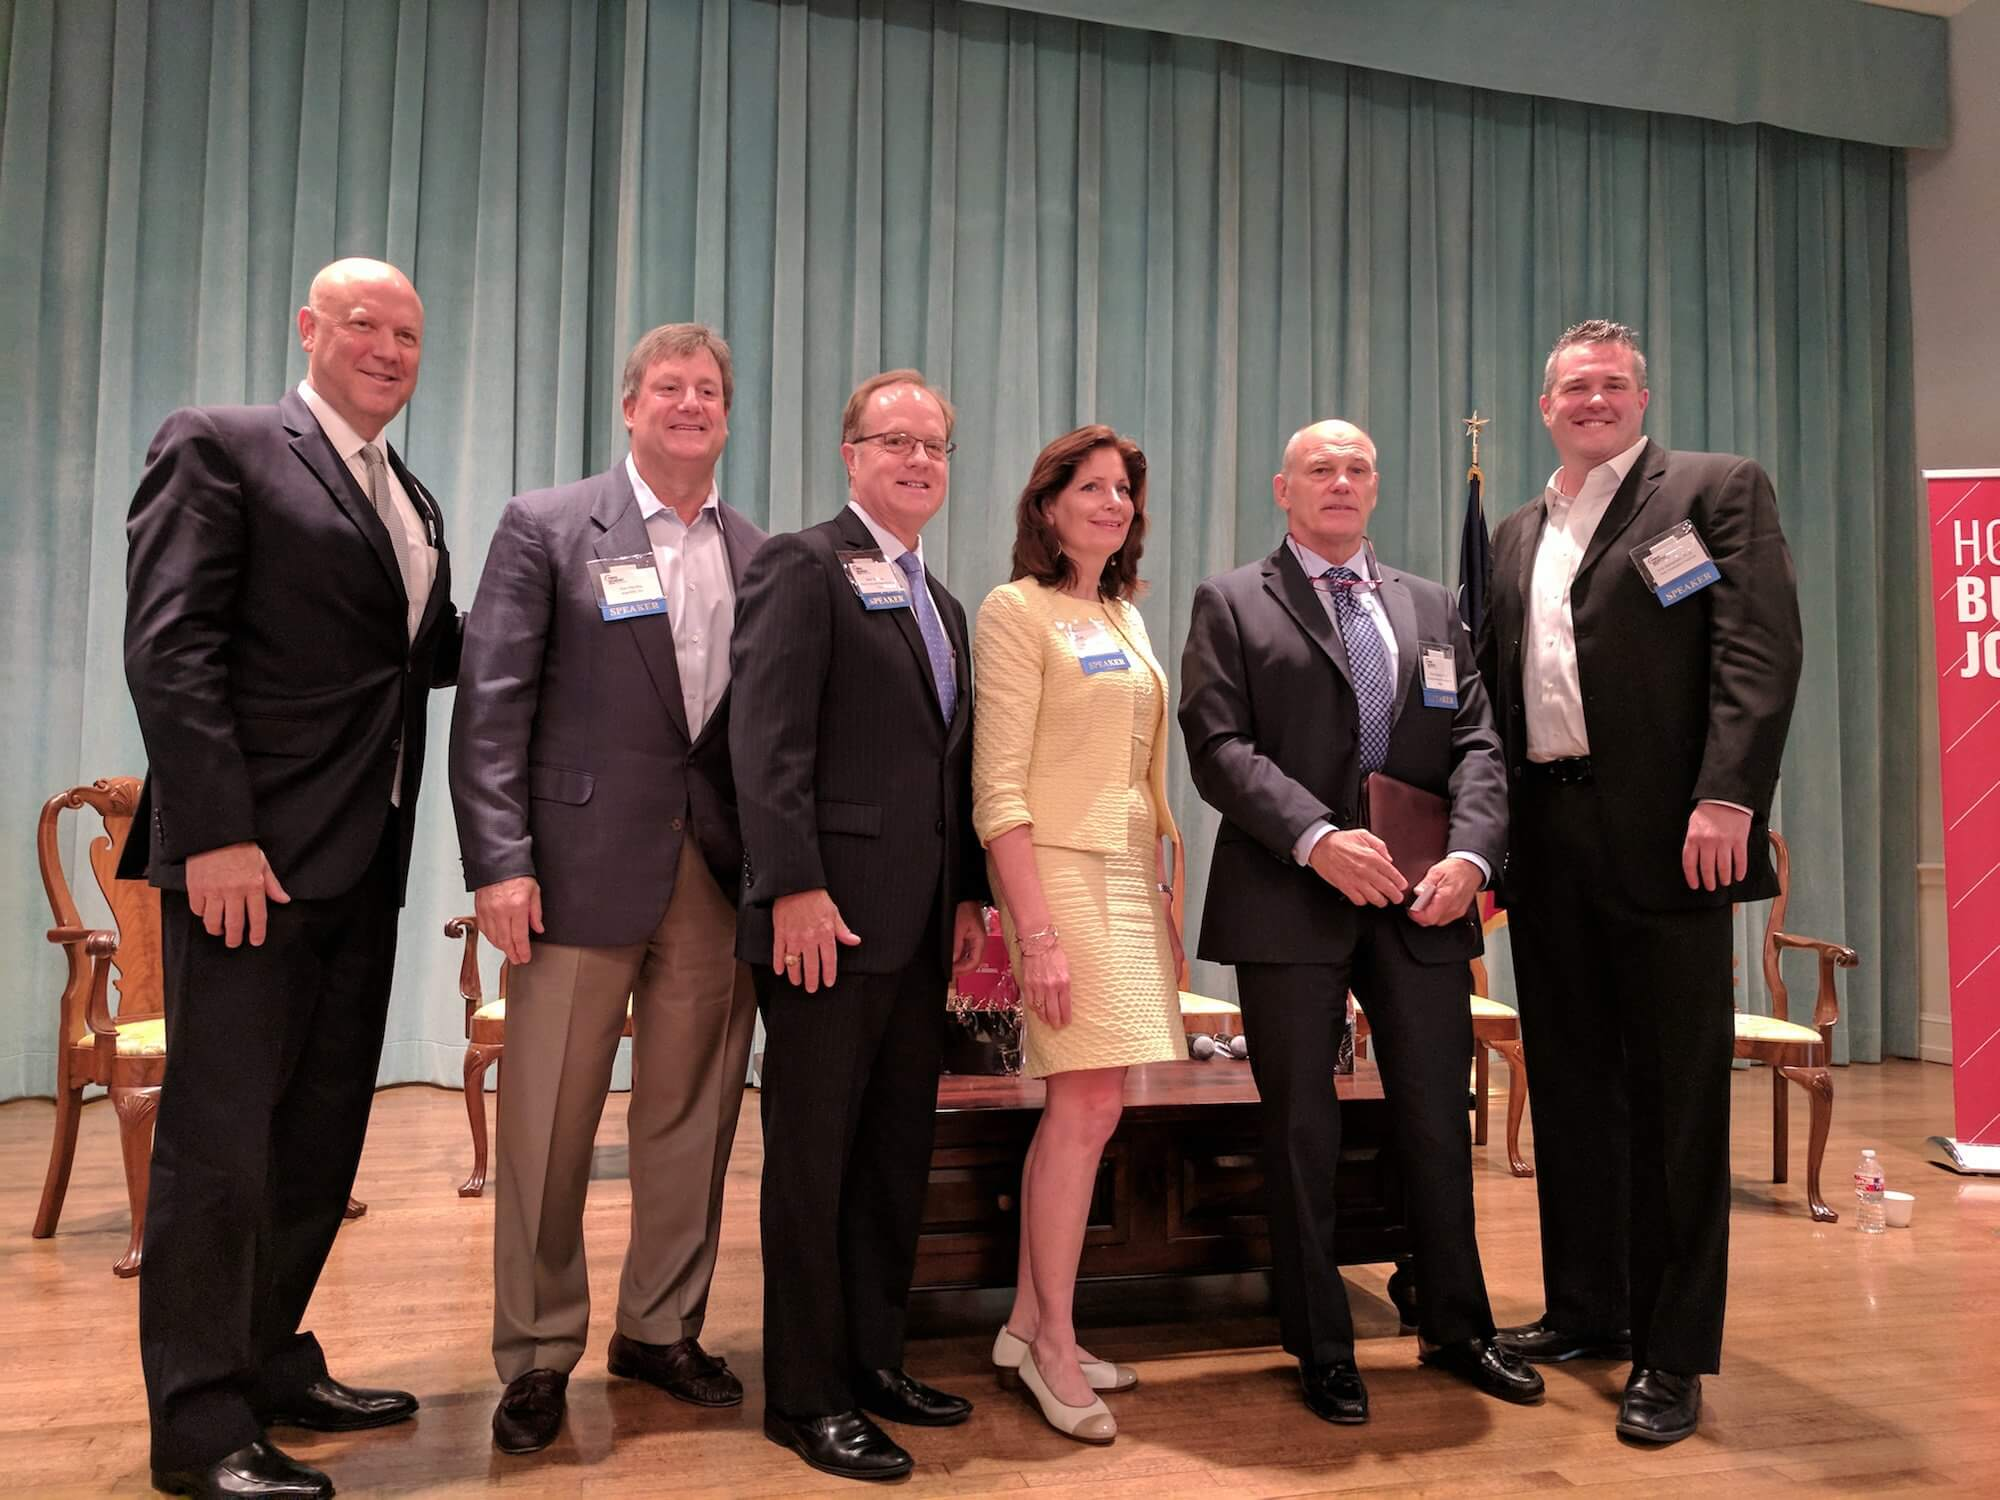 From left, Bob Charlet, Houston Business Journal; Dan Parsley, angelMD Inc.; Bob Morrow, M.D., Blue Cross Blue Shield of Texas; Julia Andrieni, M.D., Houston Methodist Coordinated Care; Chris Skisak, Ph.D., Houston Business Coalition on Health; and Erik Halvorsen, Ph.D., TMC Innovation Institute.